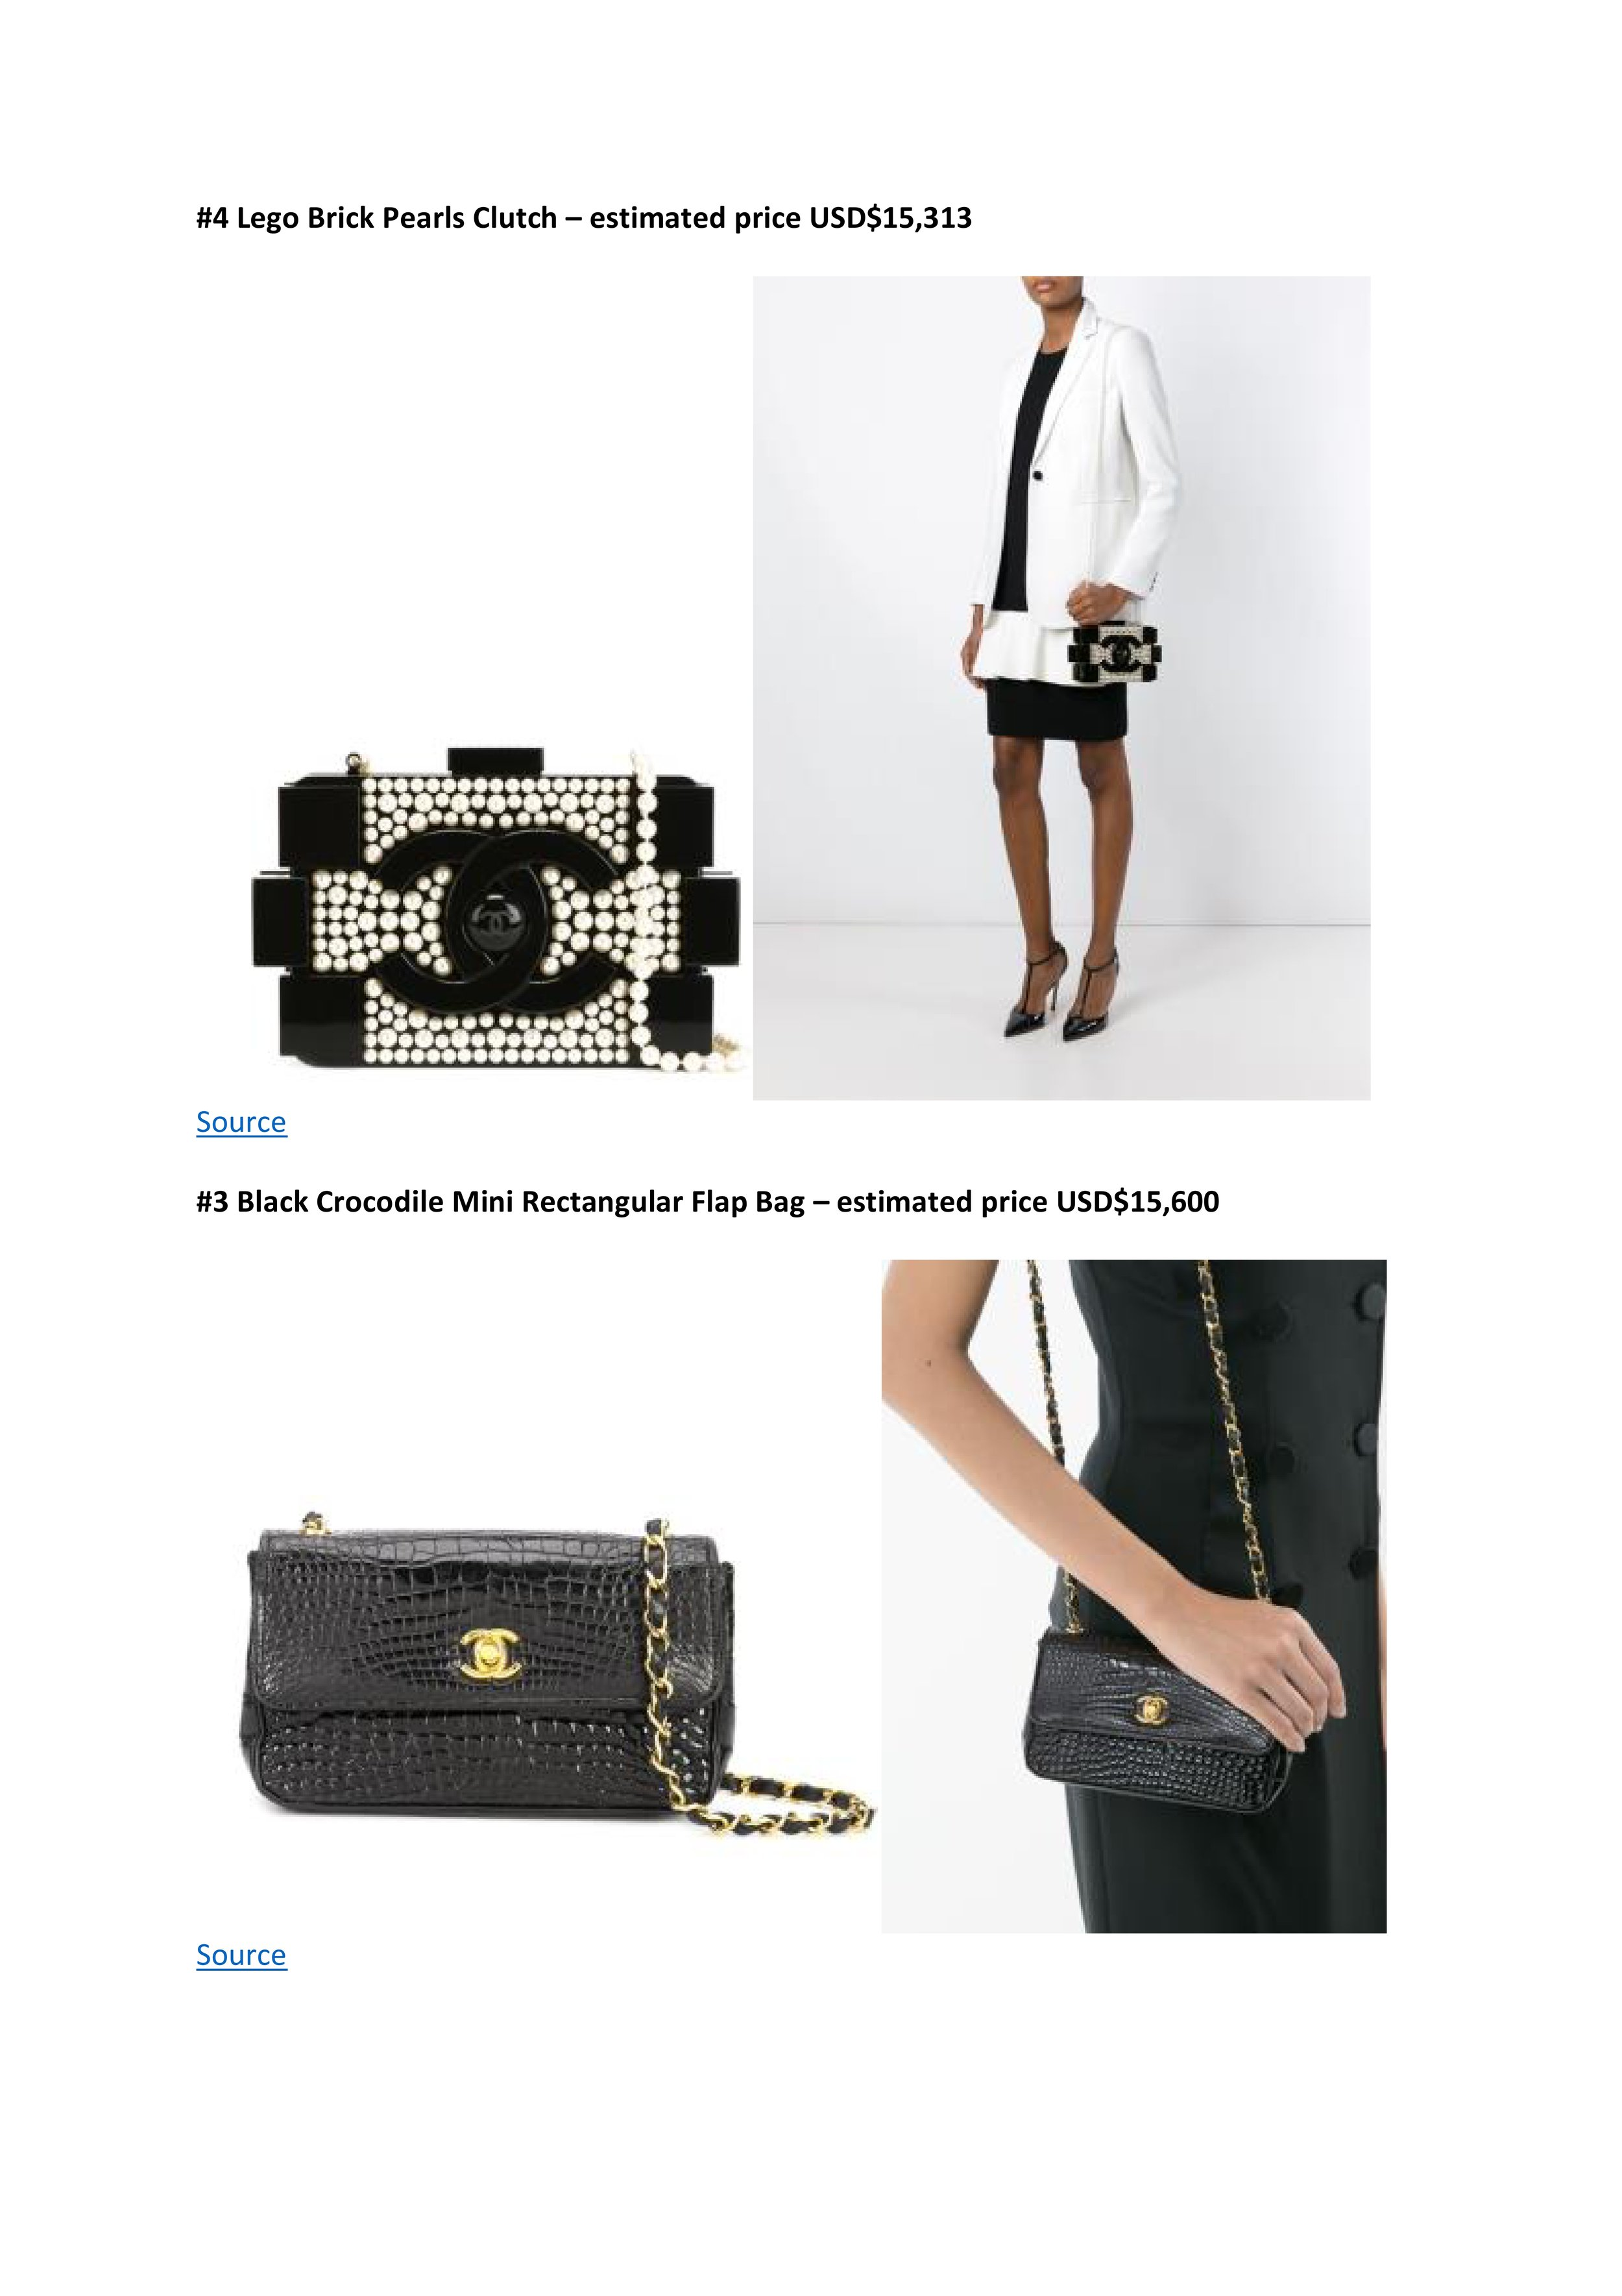 Top 10 Most Expensive Chanel Bags6.jpg